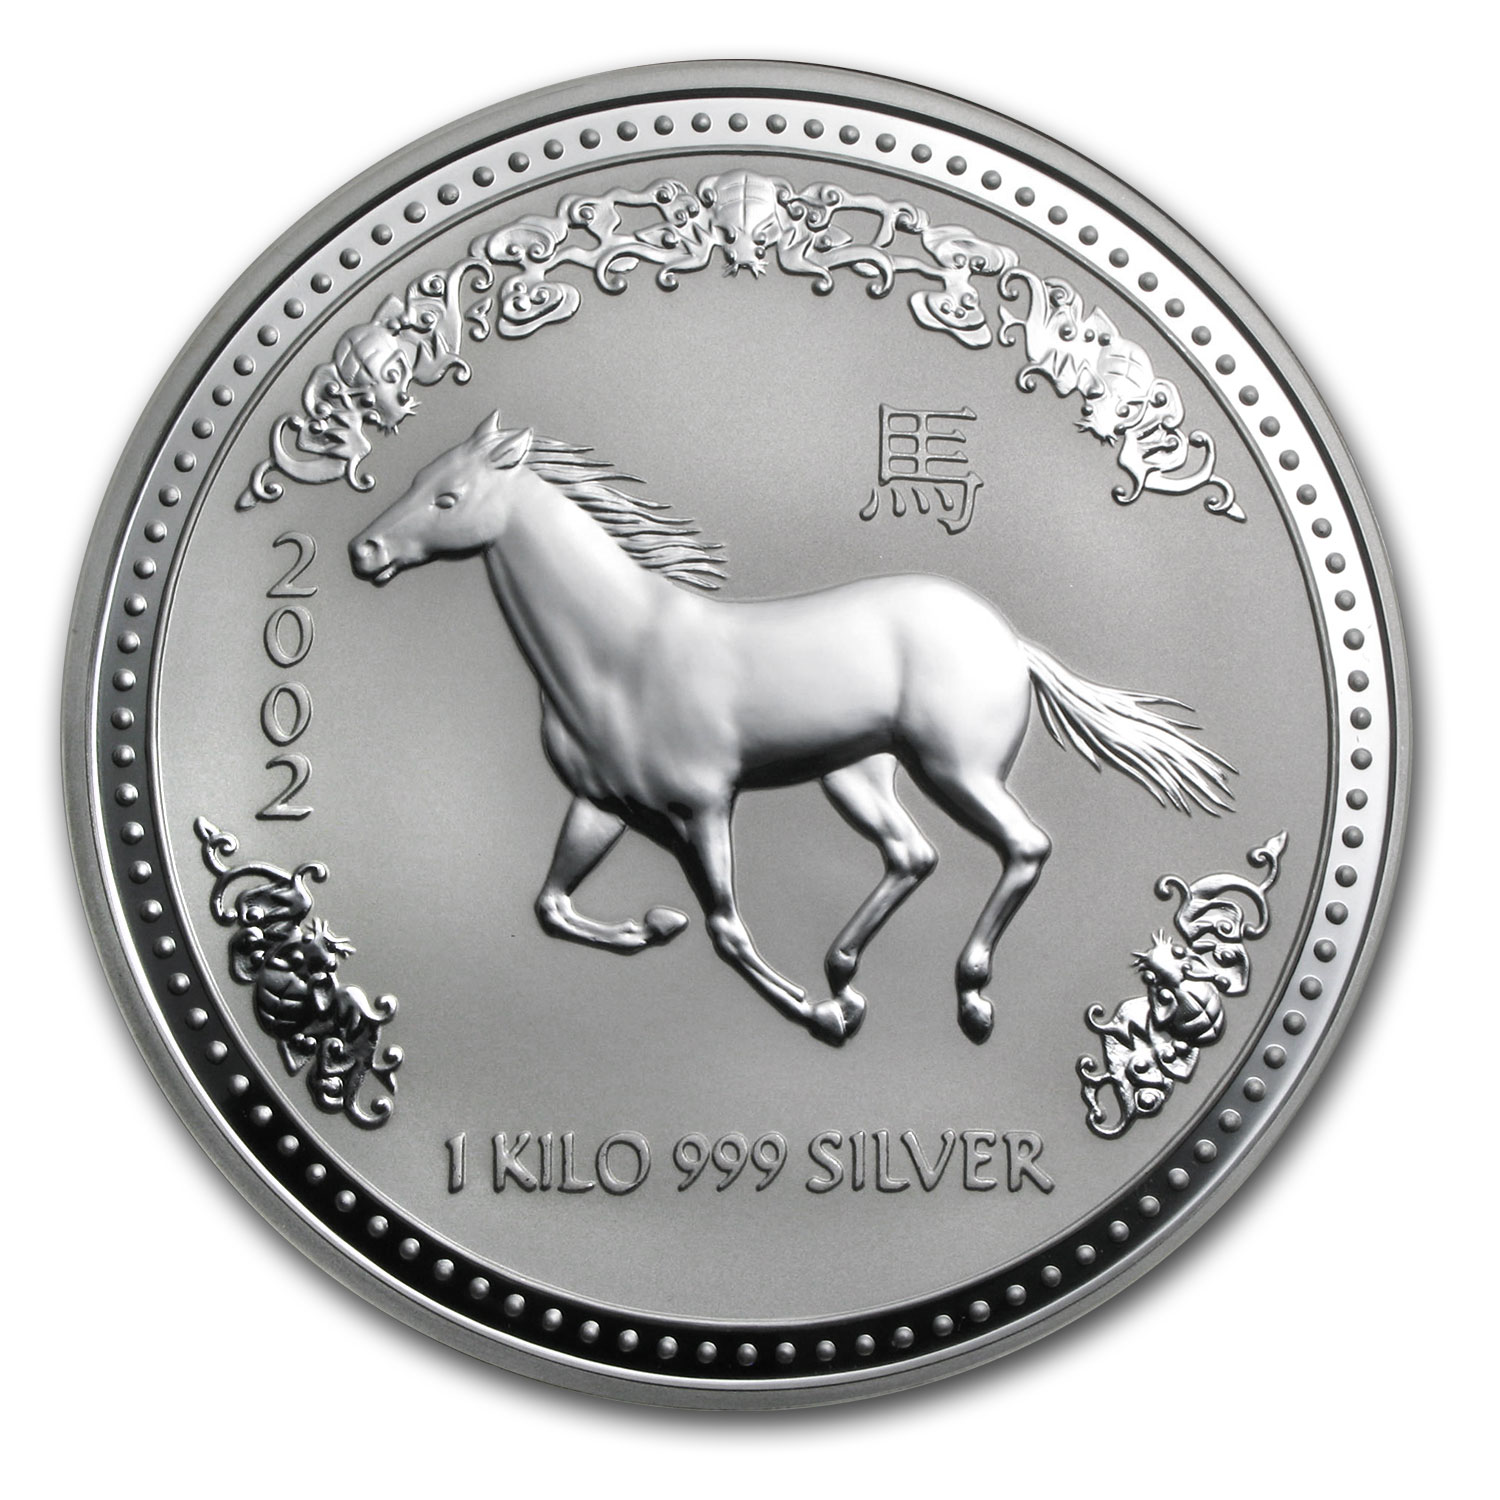 2002 1 kilo Silver Lunar Year of the Horse (Series I)